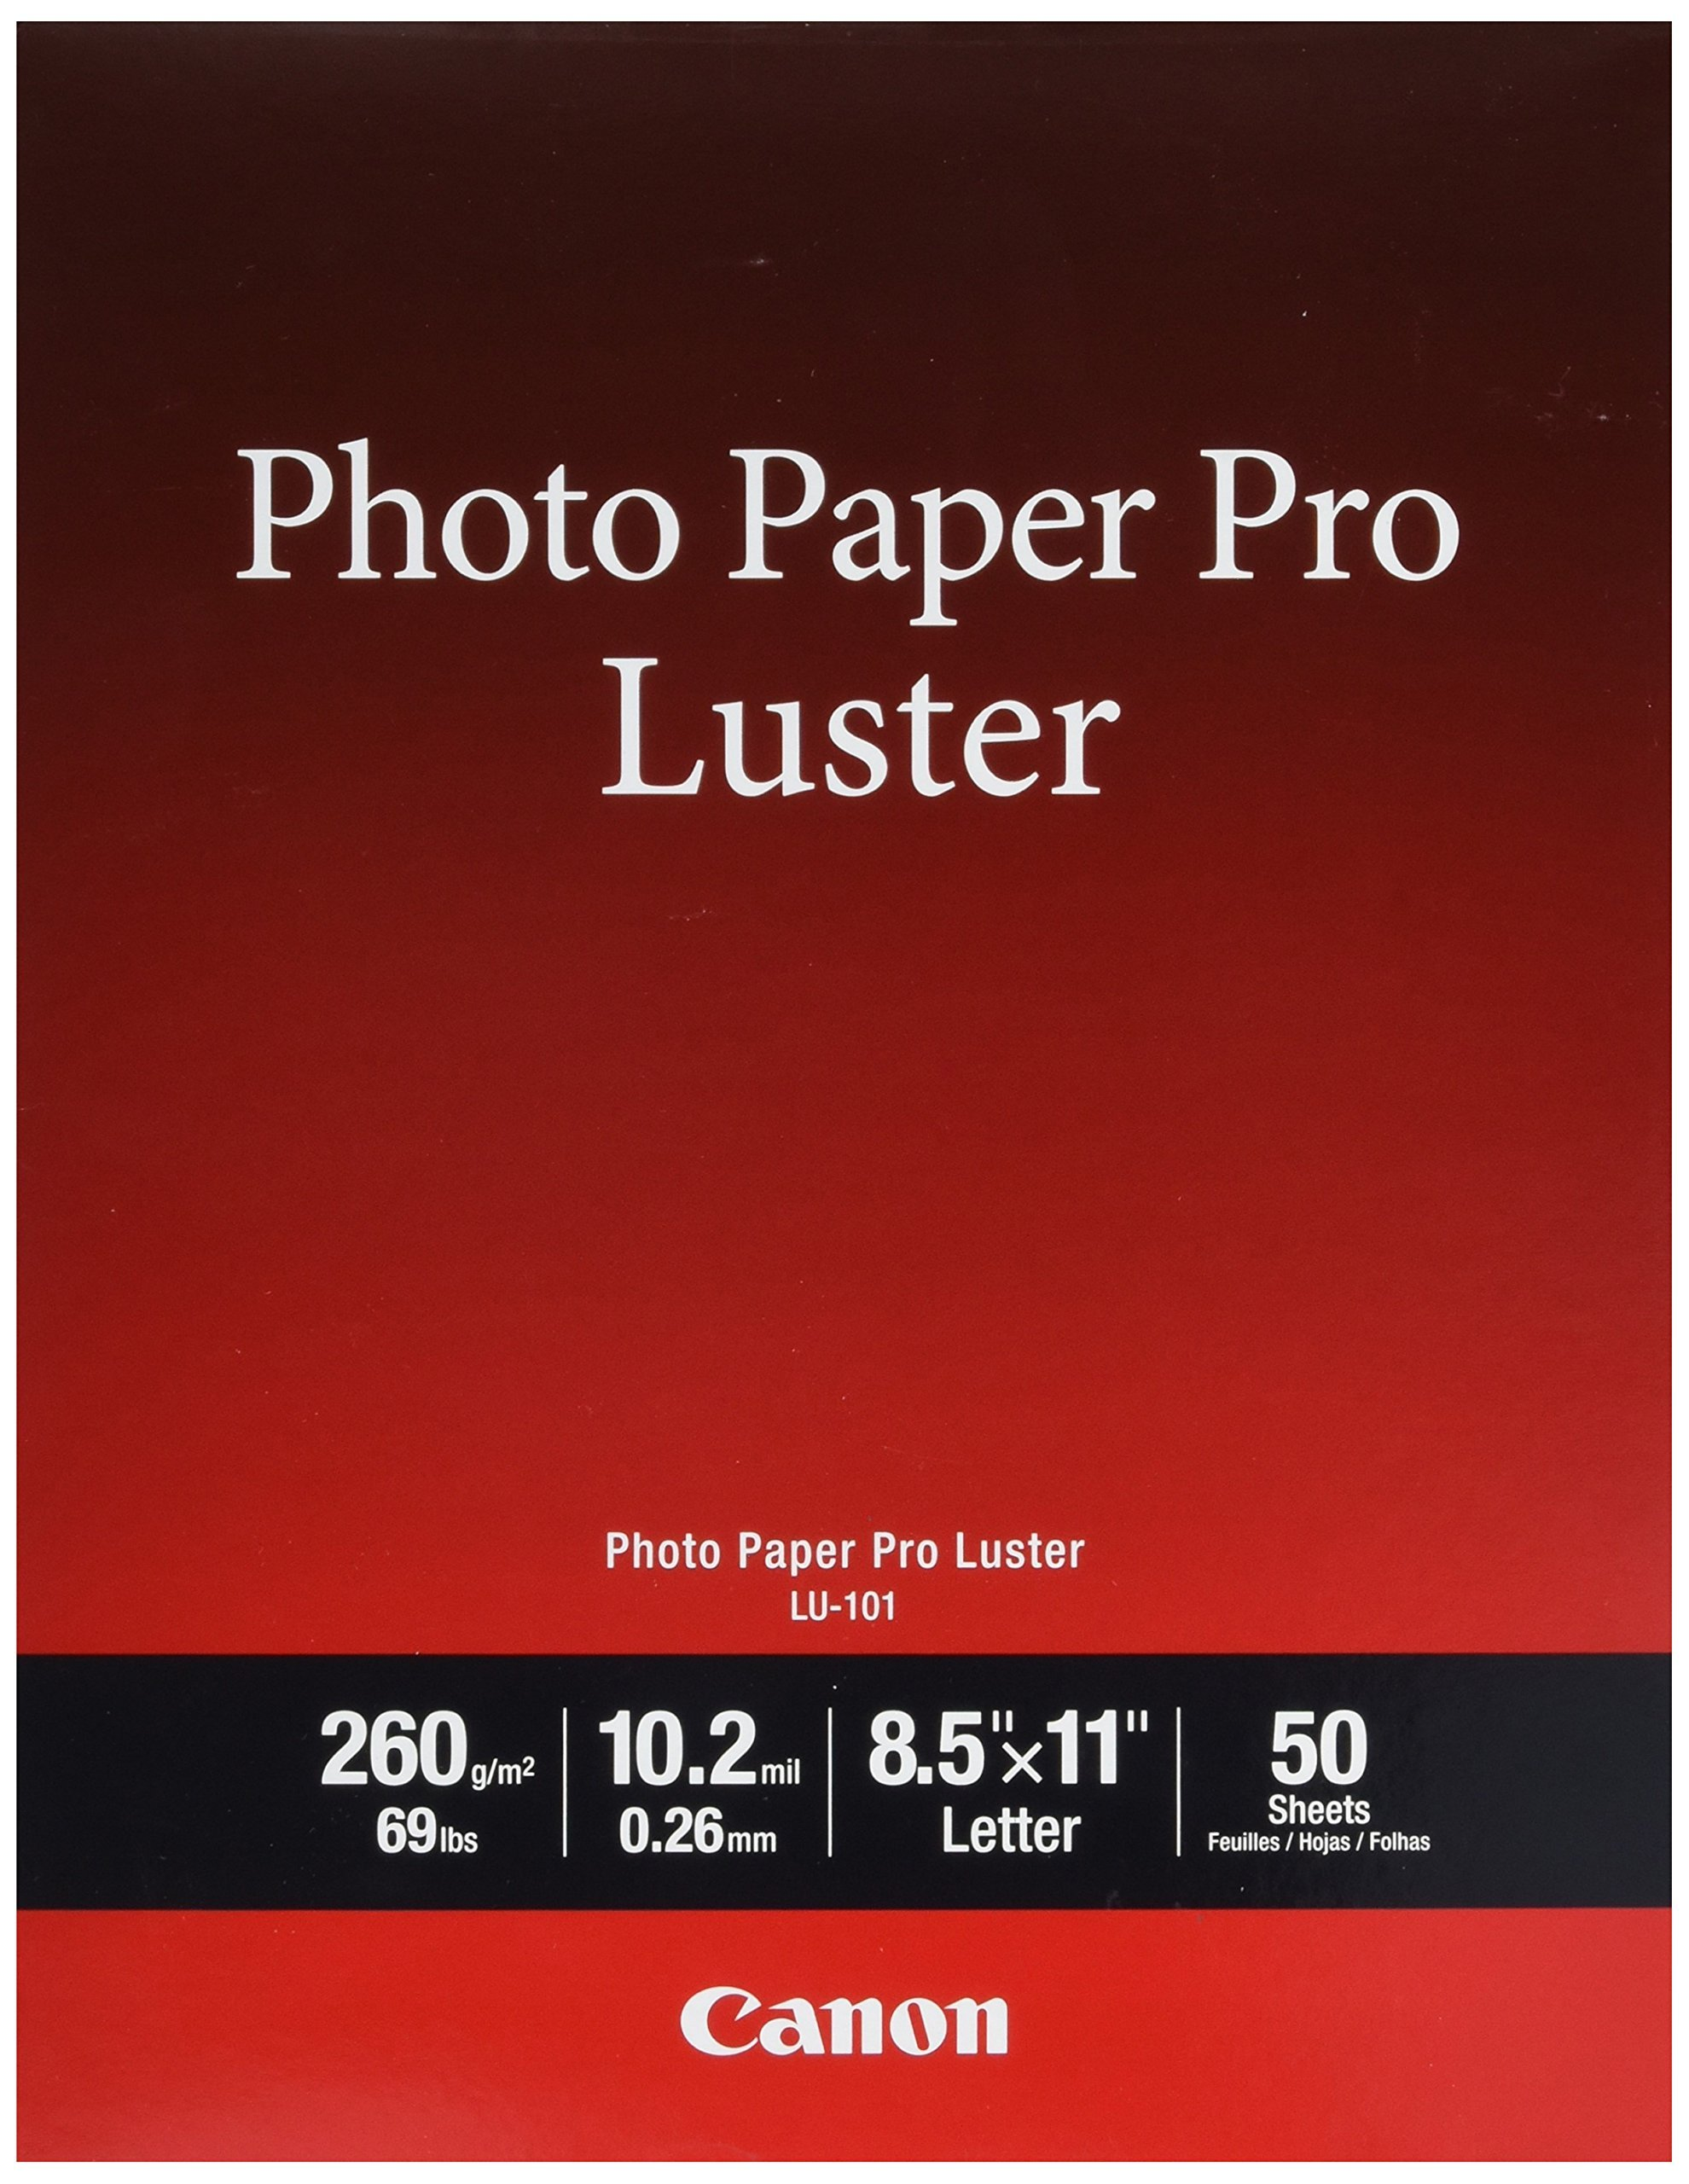 Canon Pro Luster Inkjet Photo Paper, 8.5-Inch X 11-Inch, White, 50 Sheets/Pack by Canon (Image #1)